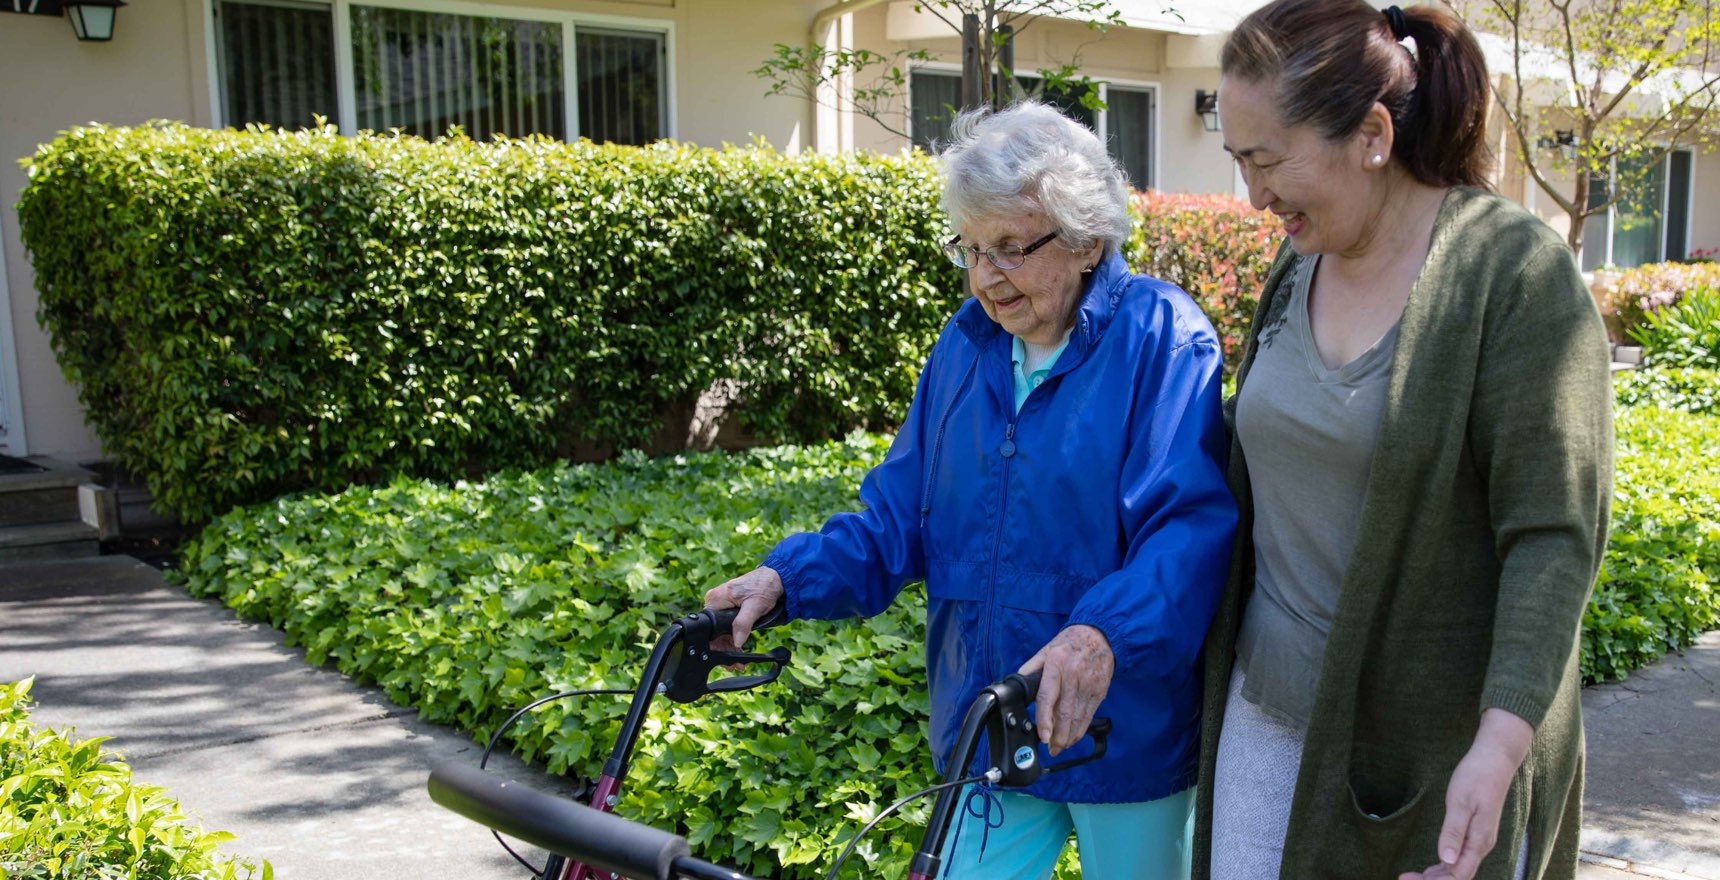 Know What to Ask Before Choosing a Home Care Agency